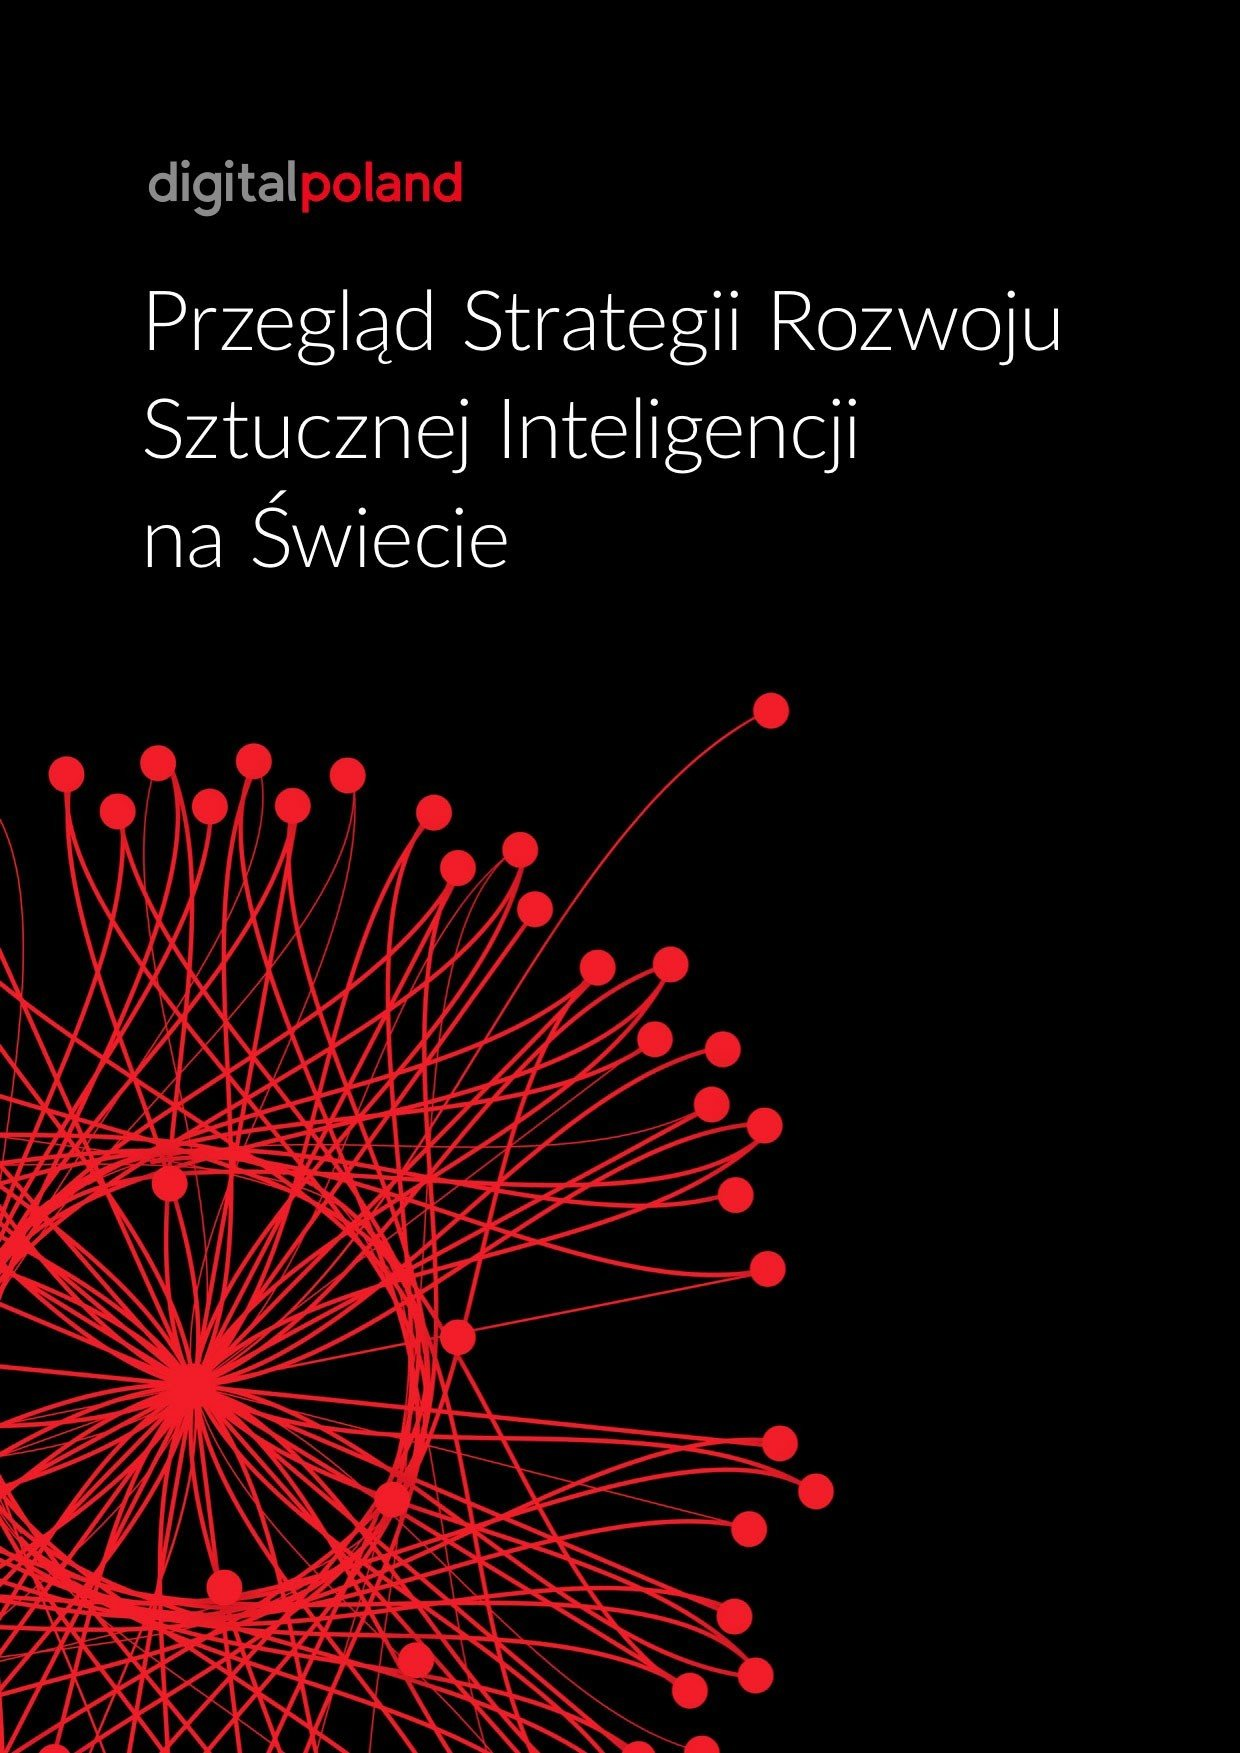 AI report for Poland with digitalpoland foundation